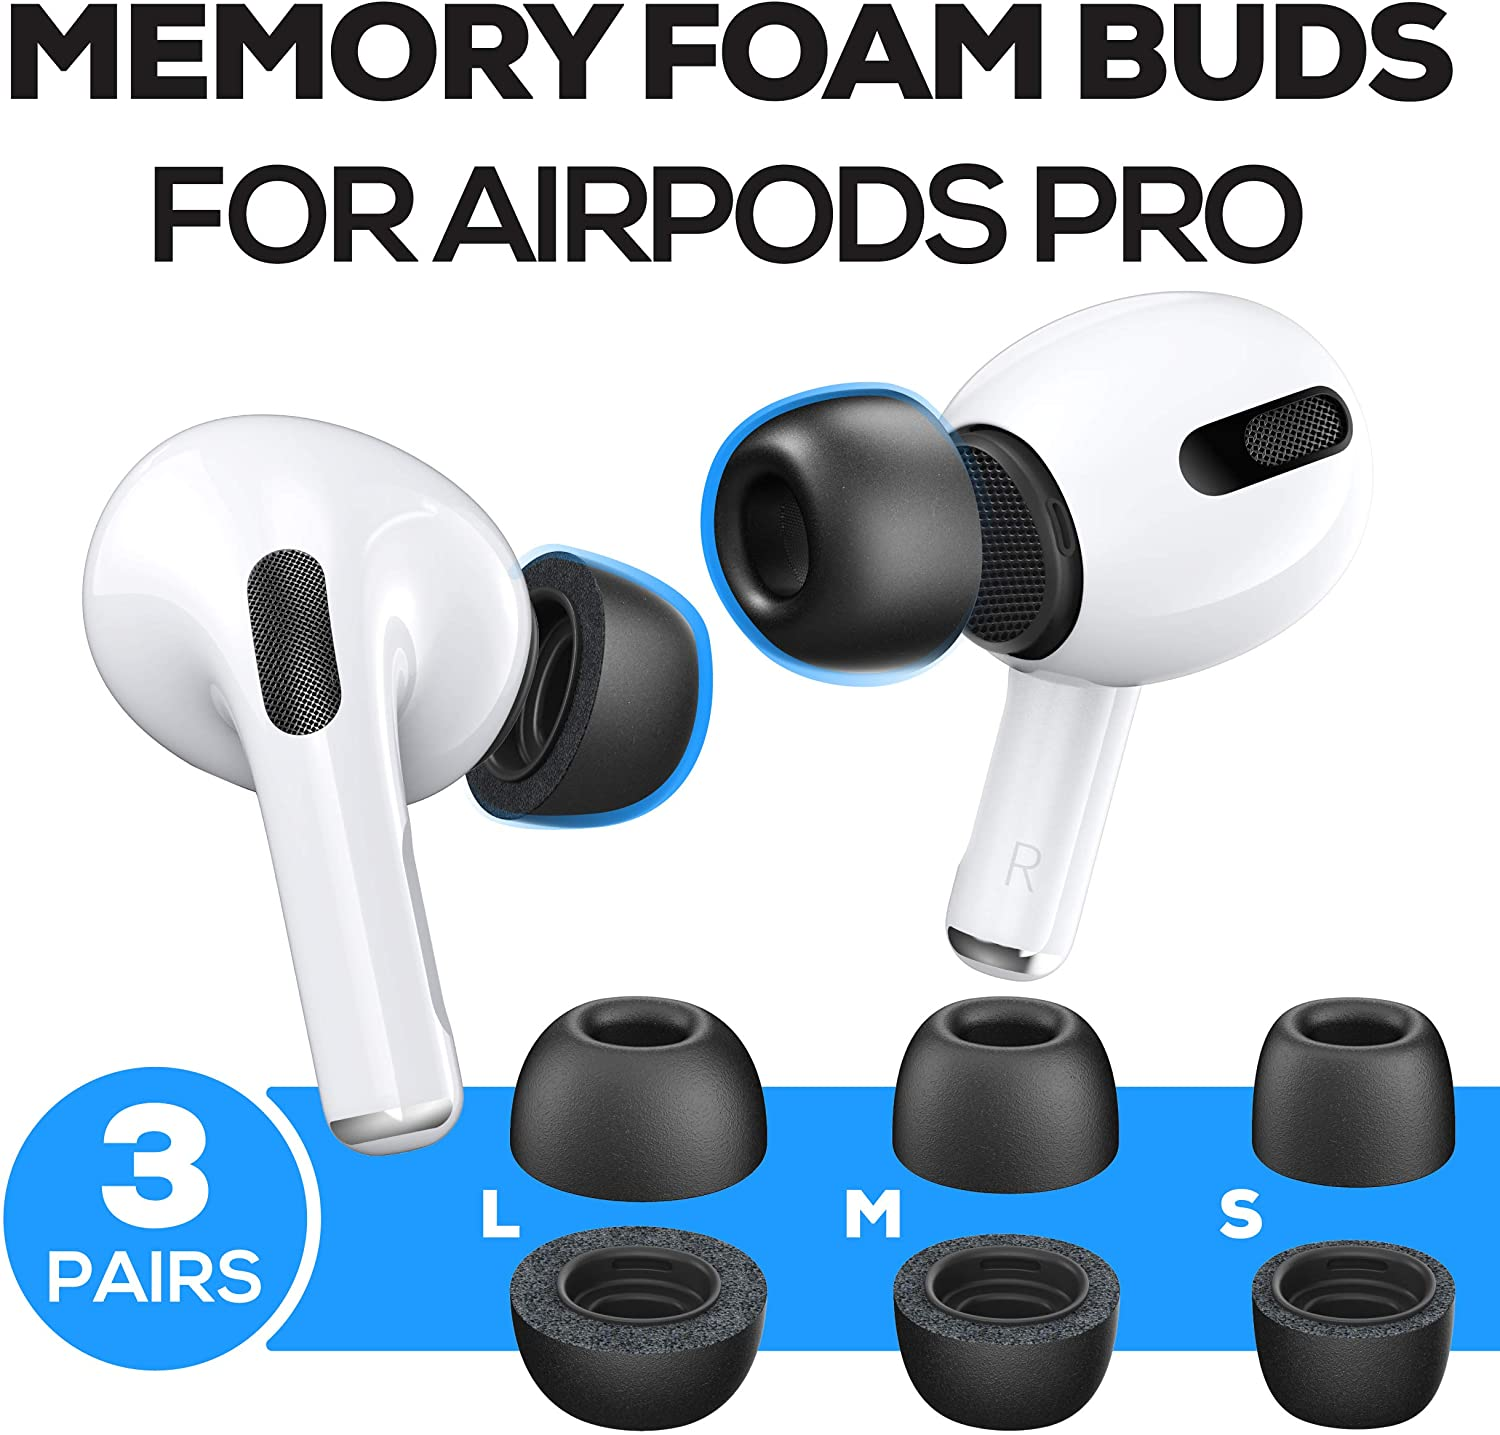 Replacement Ear Tips Earbuds For Airpods Pro 3 Anti Slip Black